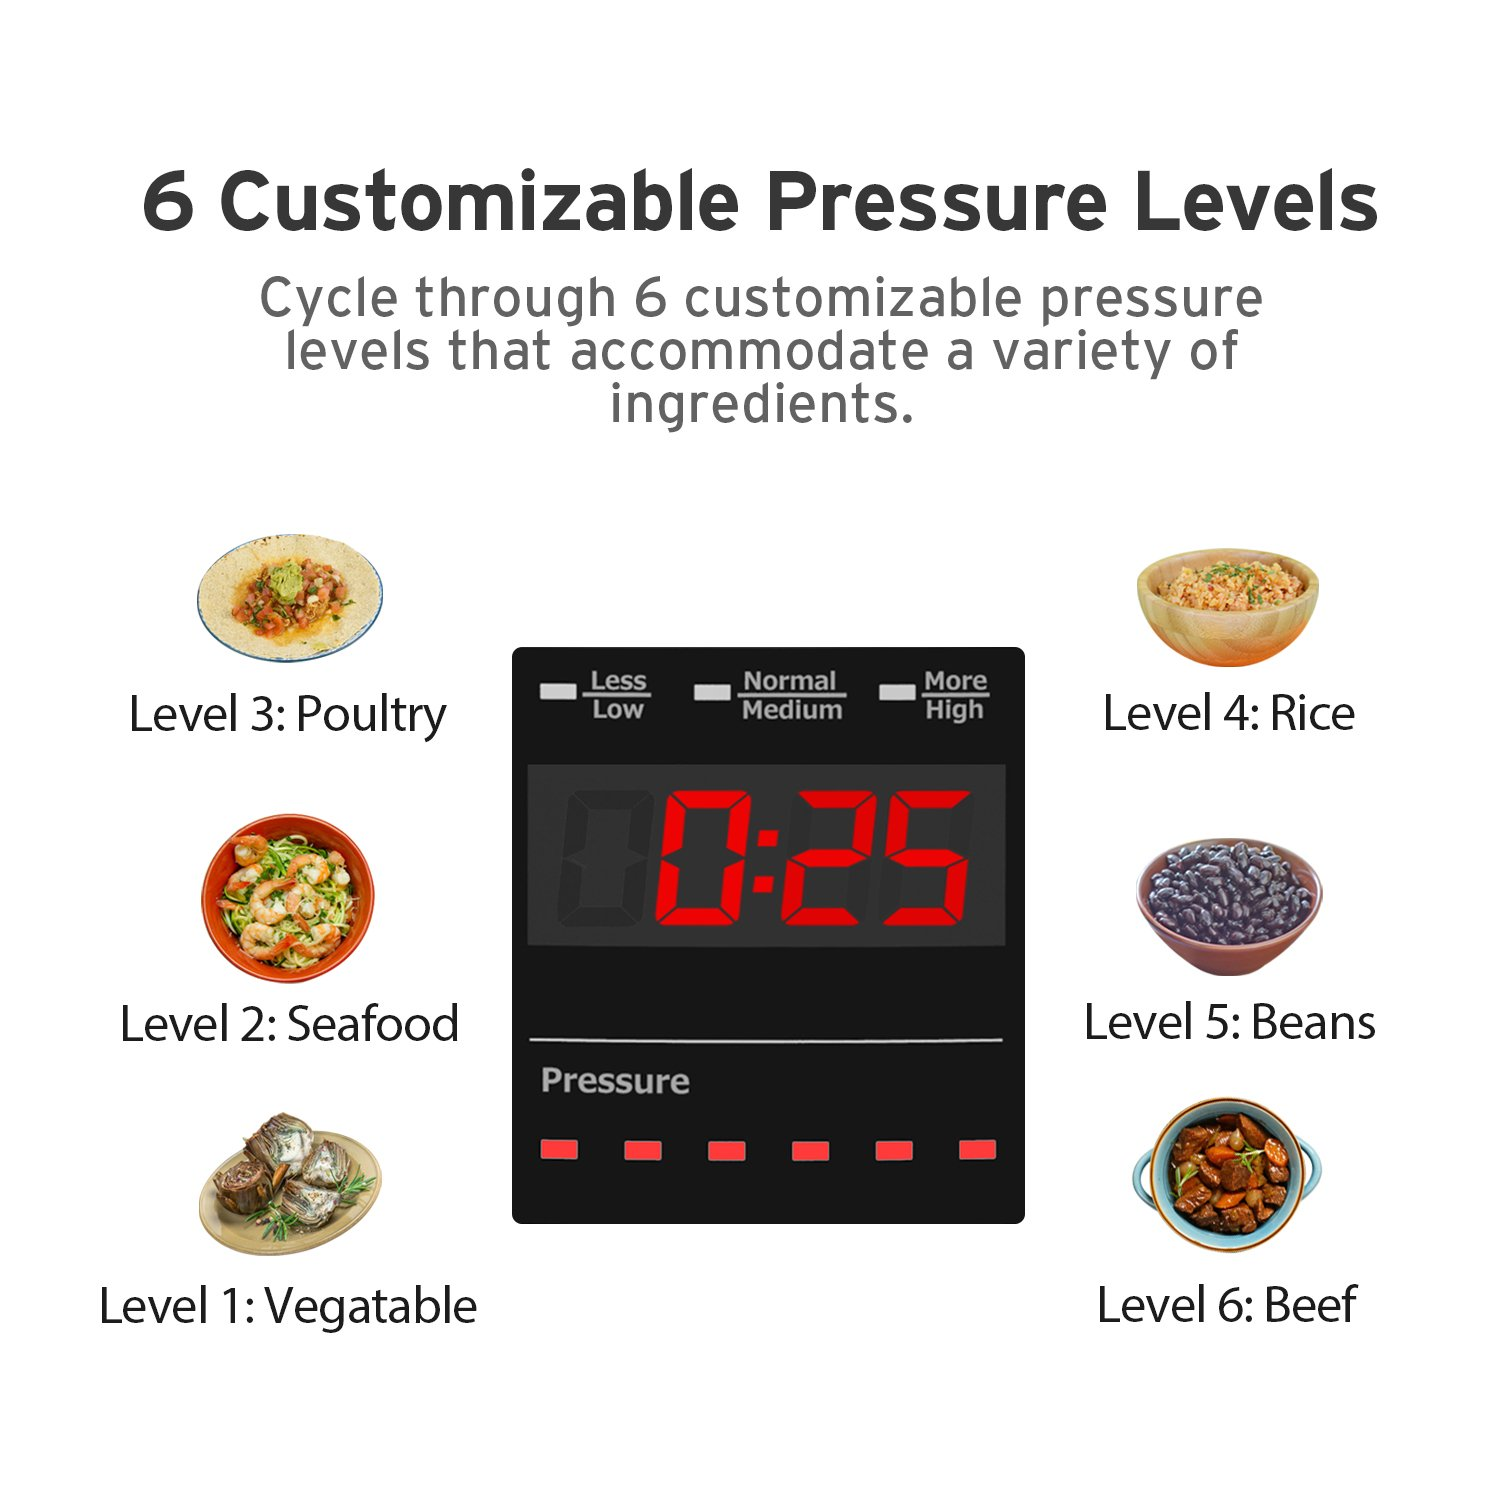 COSORI 8 Quart 8-in-1 Multi-Functional Programmable Pressure Cooker, Slow Cooker, Rice Cooker, Steamer, Sauté, Yogurt Maker, Hot Pot and Warmer, Full Accessories Included, Stainless Steel by COSORI (Image #2)